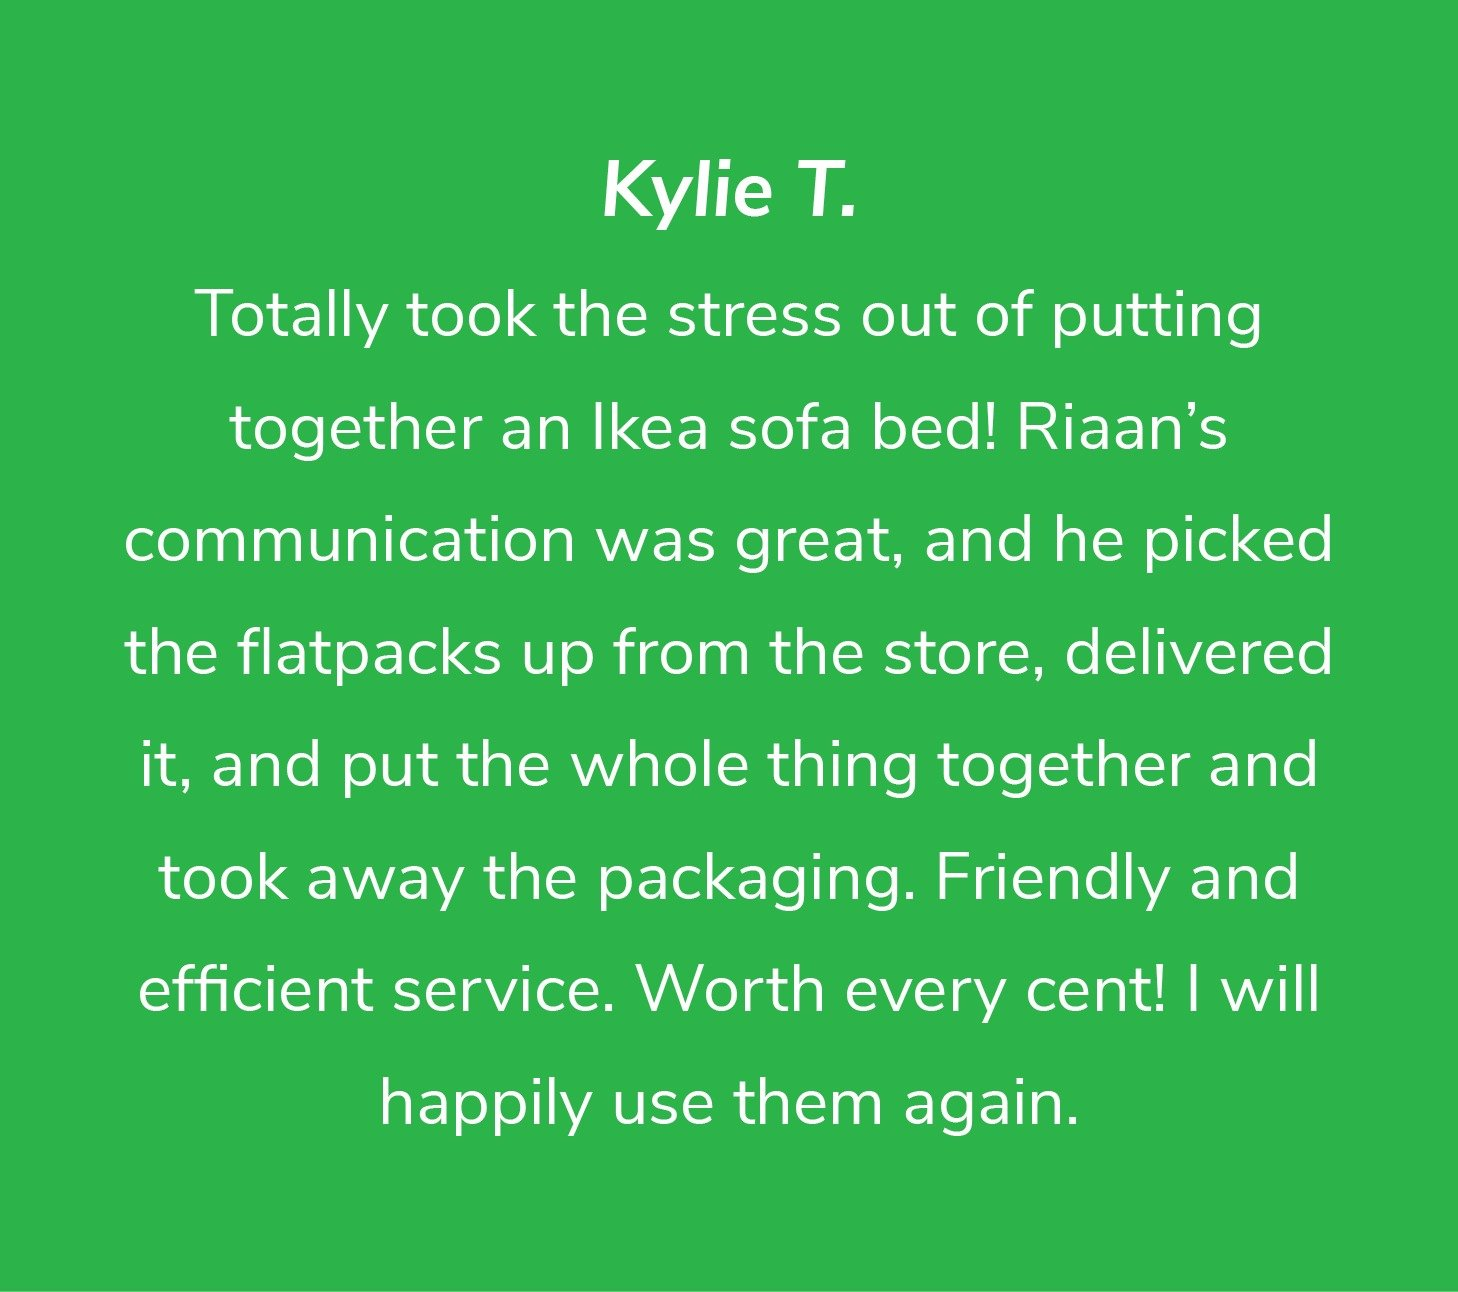 Customer review from Kylie T